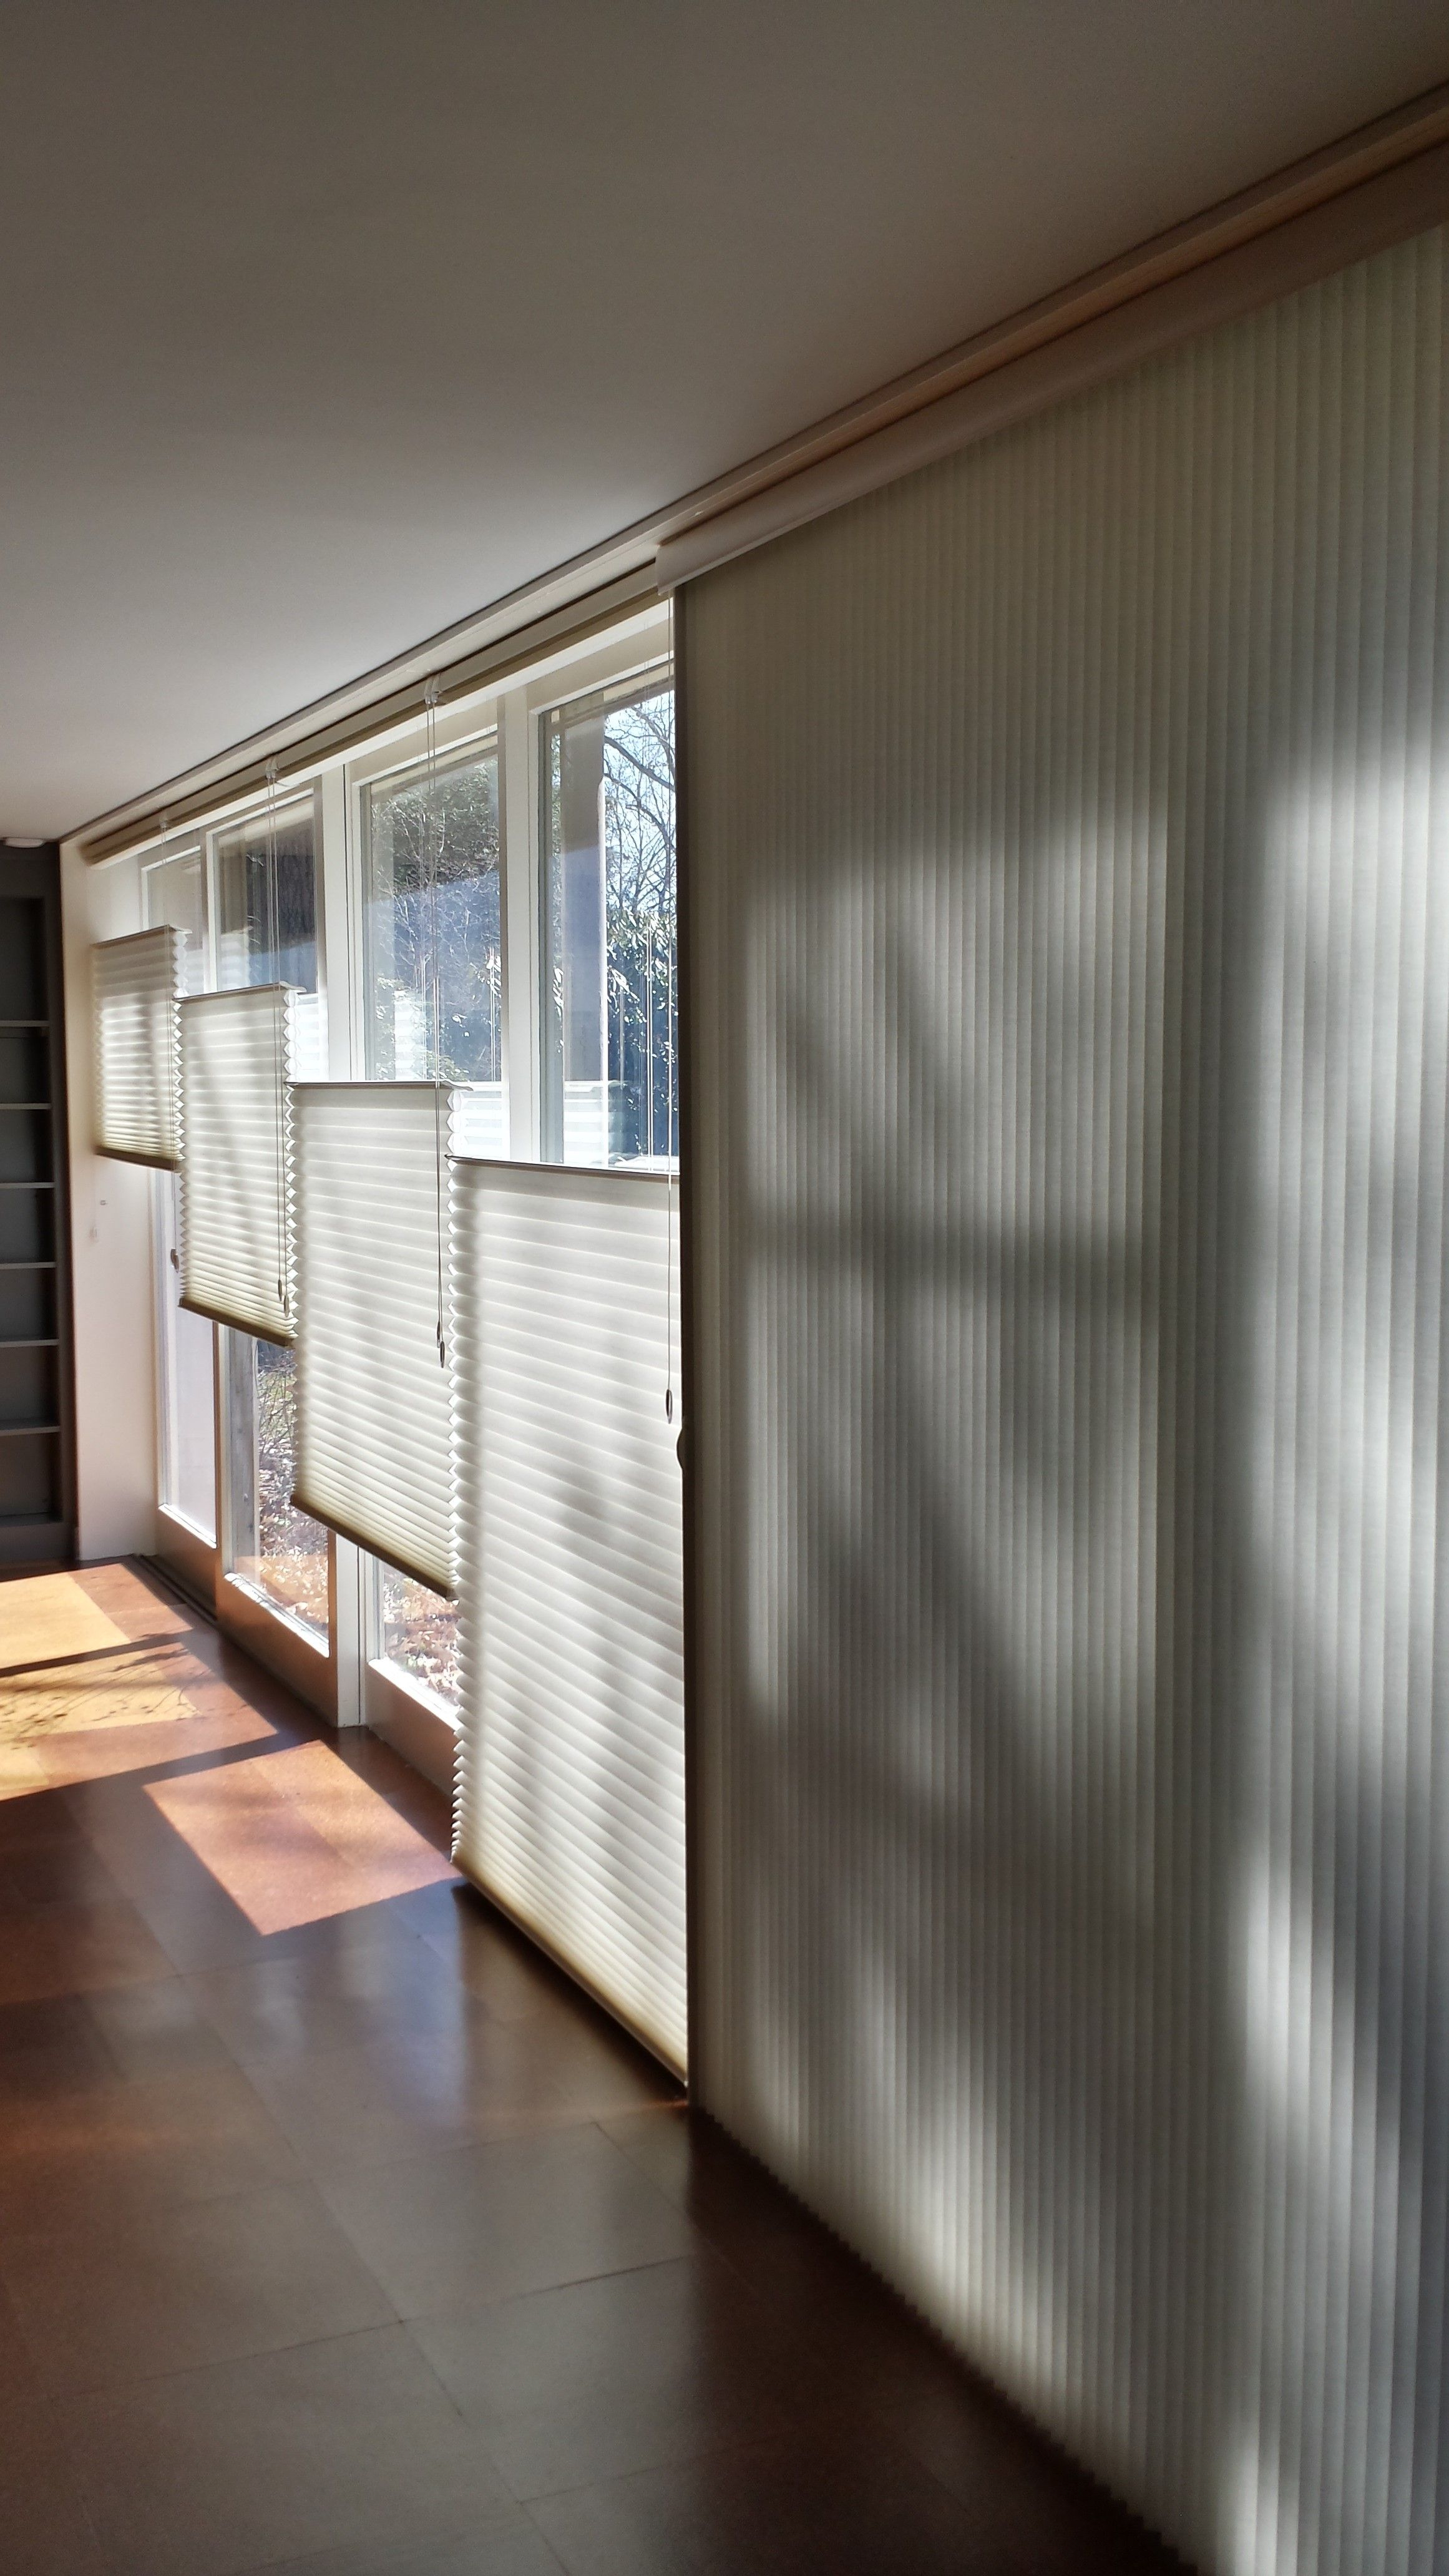 Hunter douglas shades top down bottom up and vertiglide for sliding